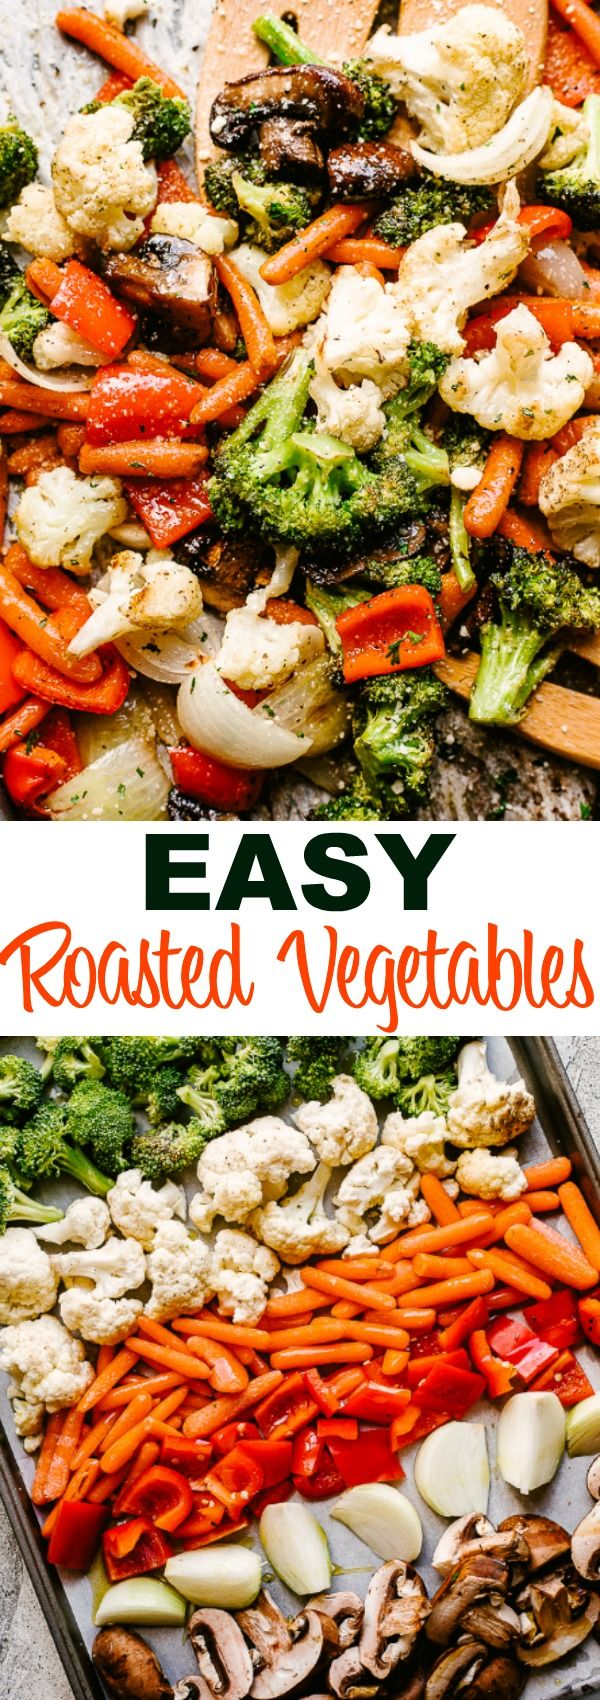 Easy Oven Roasted Vegetables Recipe | Diethood